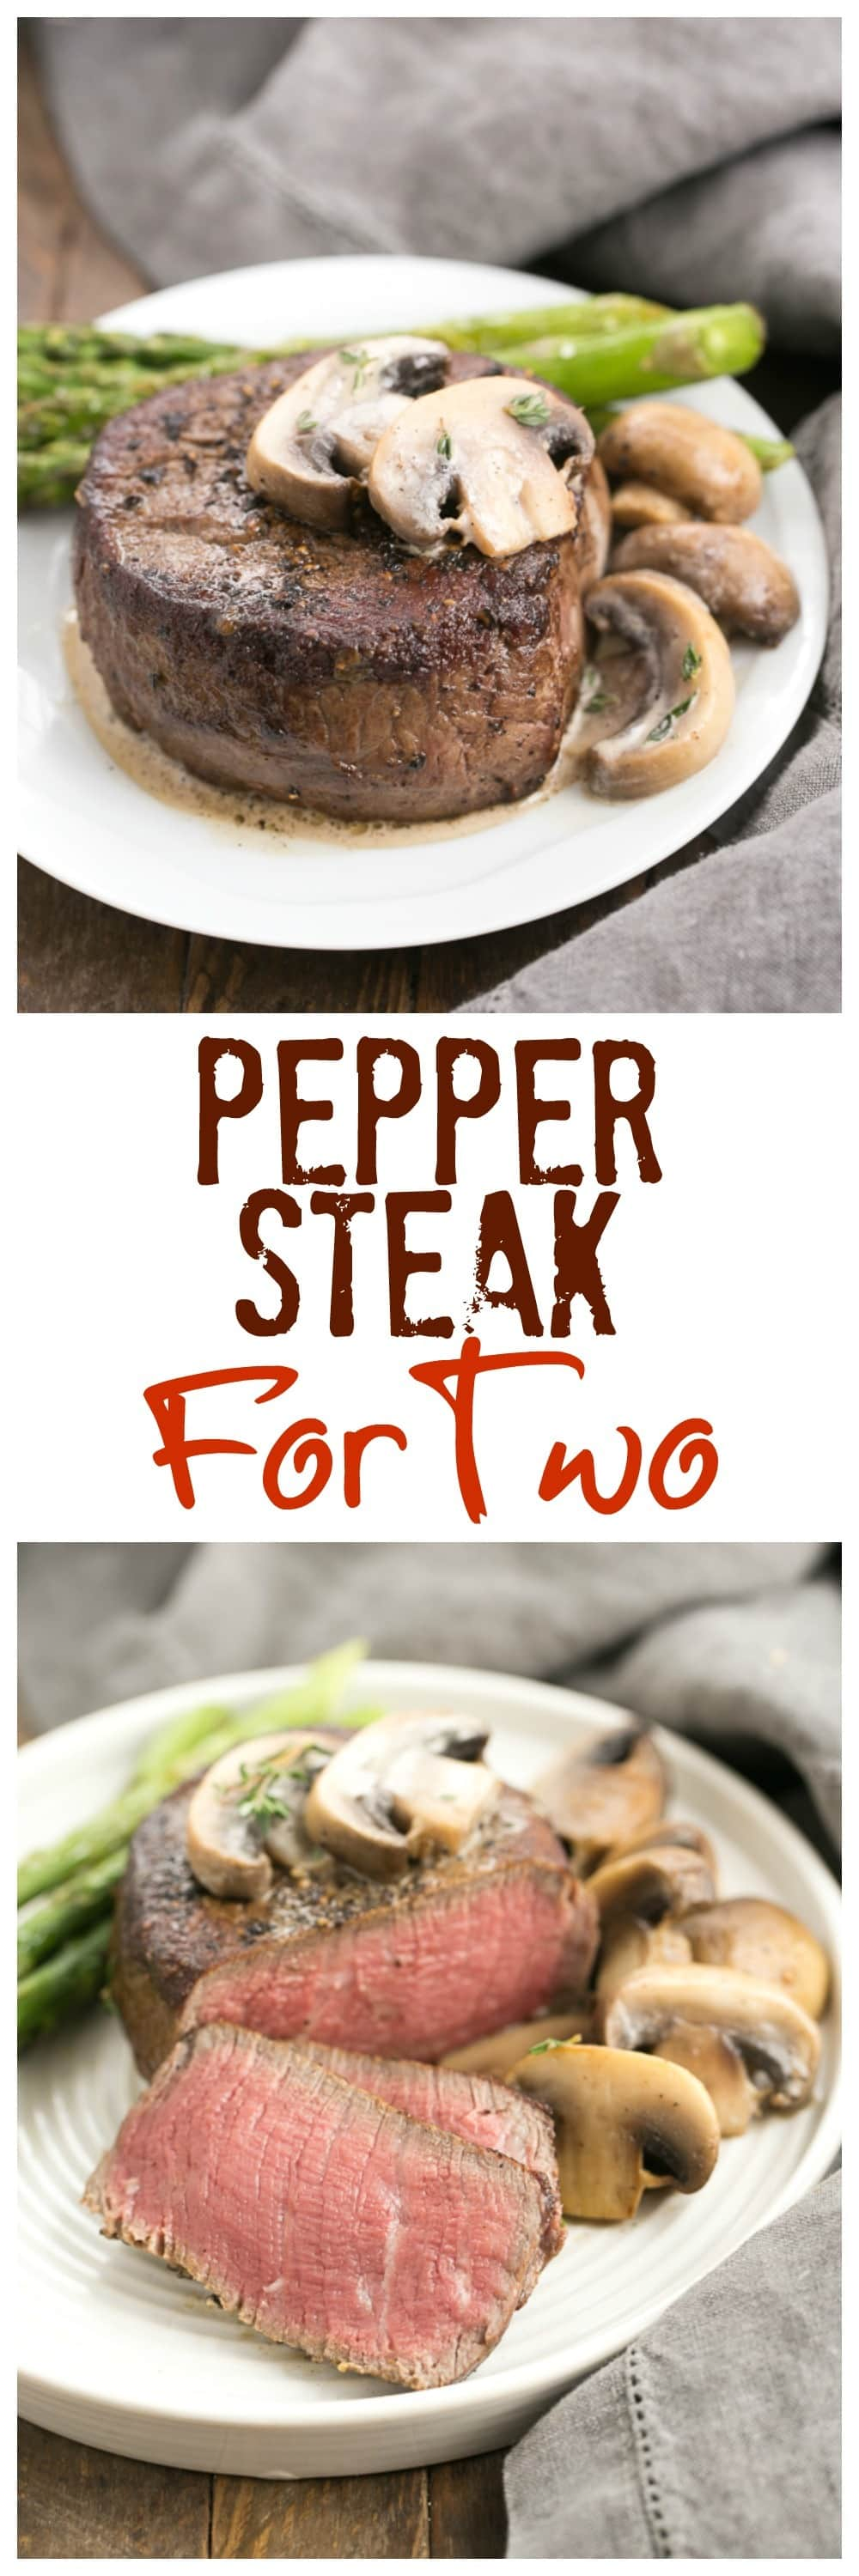 how to cook pepper steak on stove top